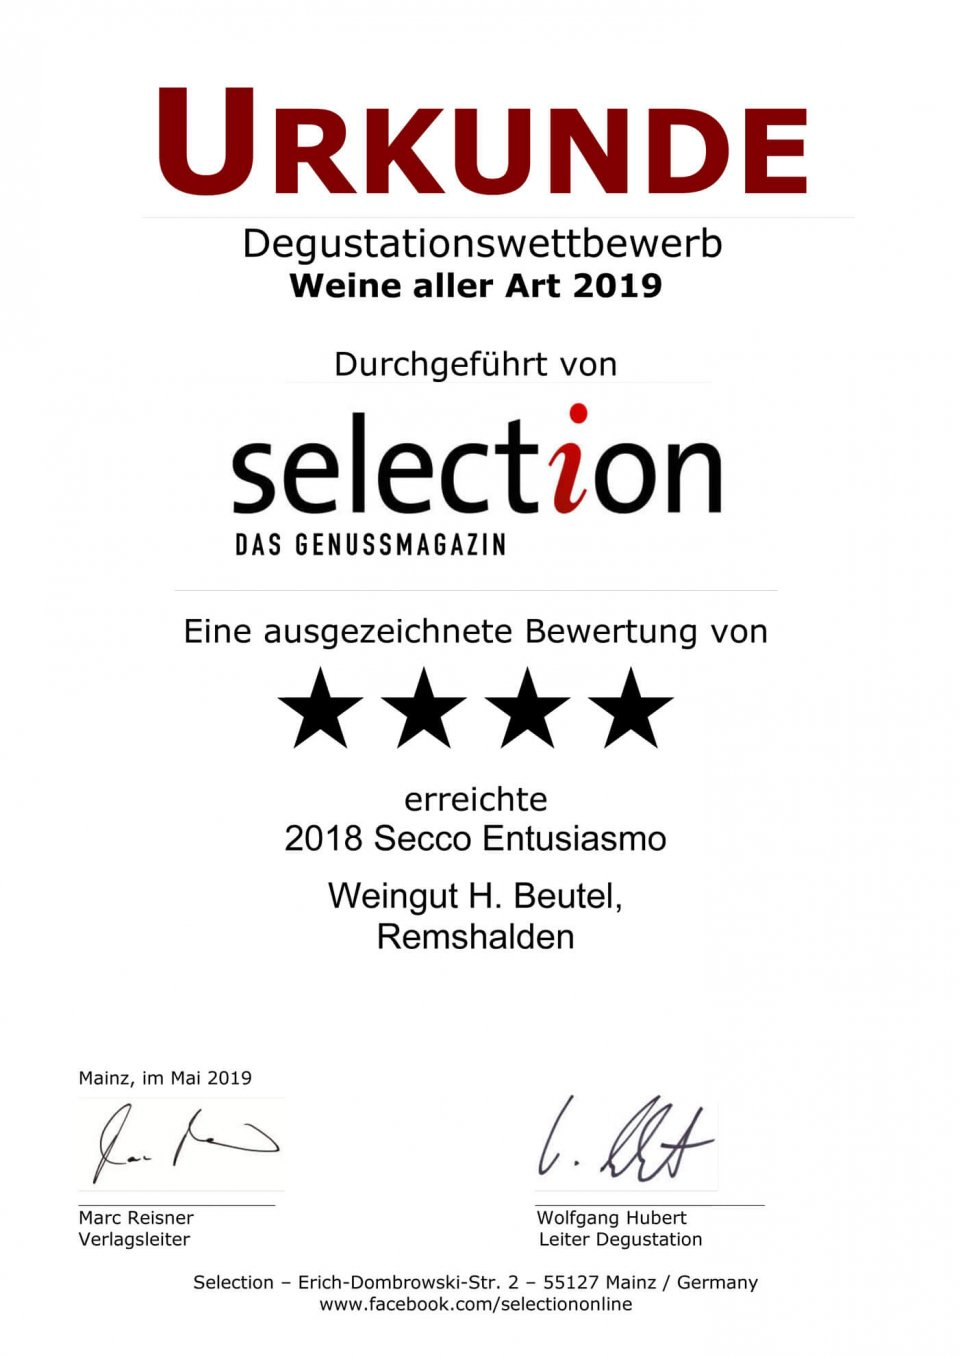 Urkunde SELECTION 2019 - Ausgezeichnet - Secco Entusiasmo 2018